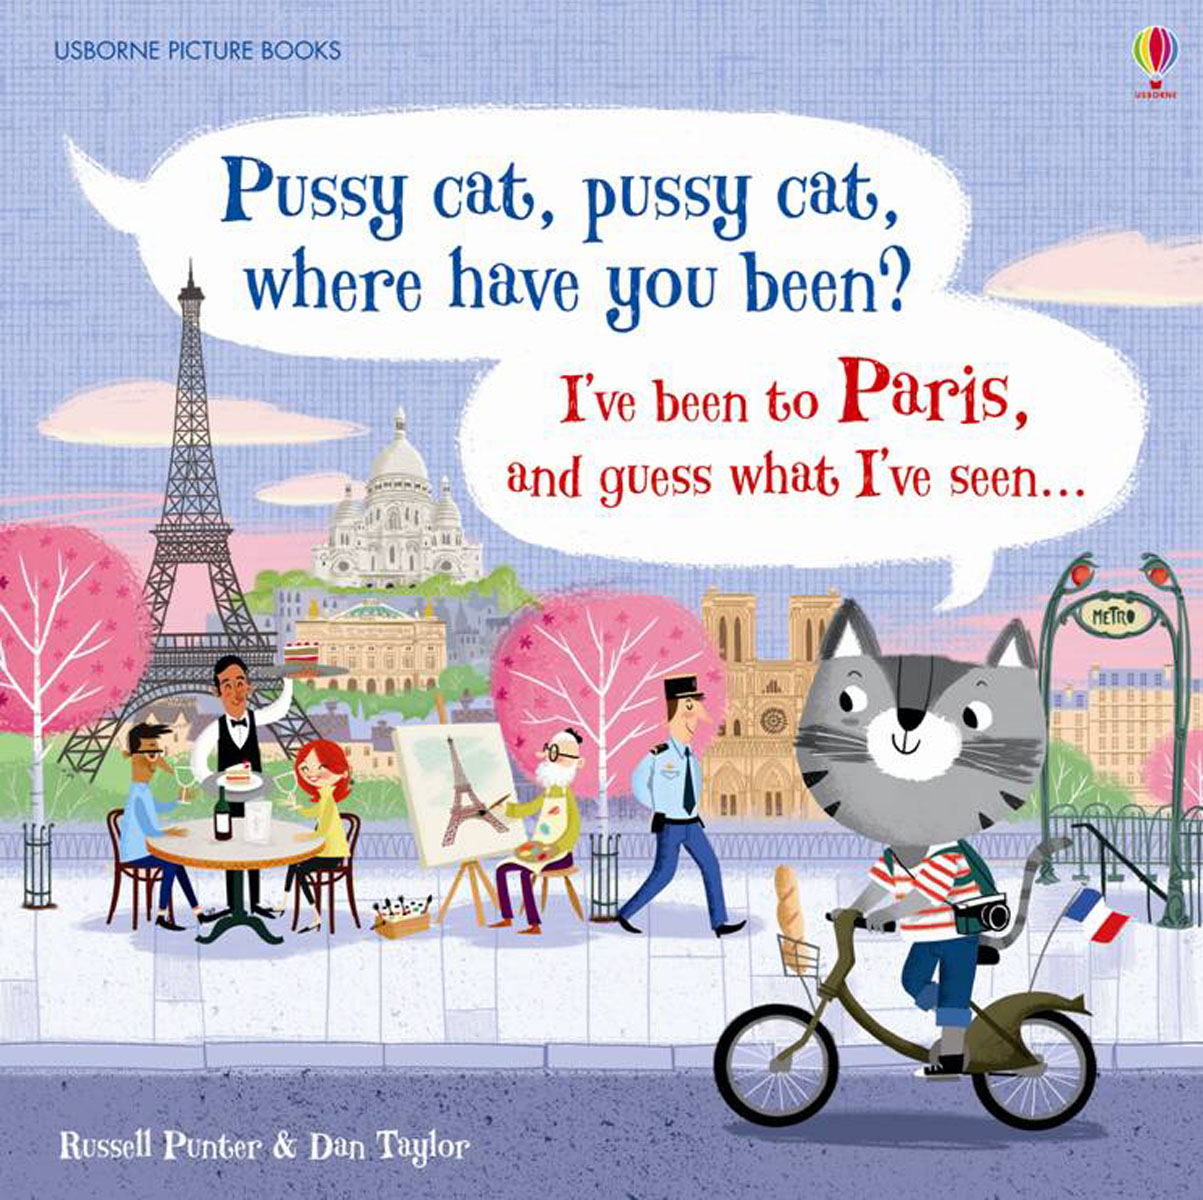 Pussy cat, pussy cat, where have you been? I've been to Paris and guess what I've seen…